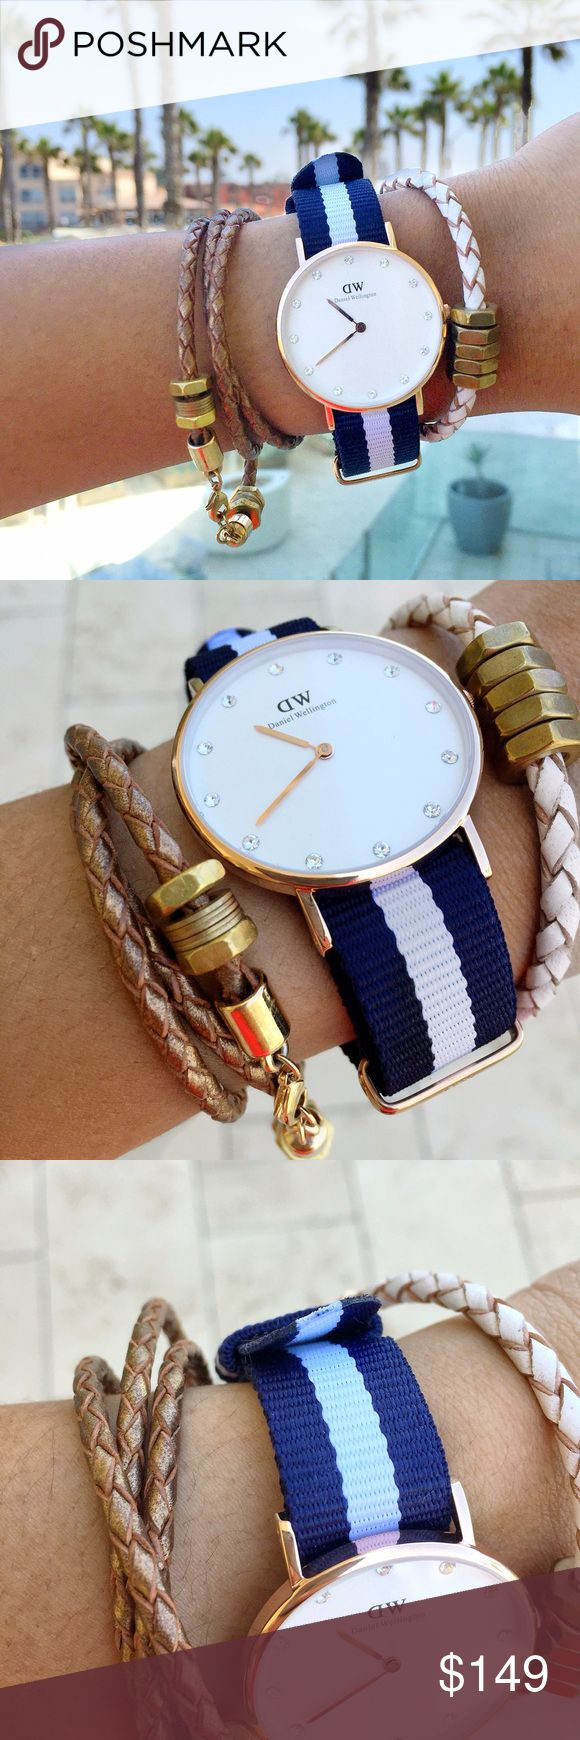 "Daniel Wellington Watch Blue and white nato strap with a slim case in rose gold, rose gold hands, Swarovski crystal index. Available on danielwellington site ""Classy Glasgow 34MM"" site for $175. In excellent like new condition. See photos. Will ship watch only with box. Bracelets for sale separately in my closet. Add to Bundle items to save!   Size: 34mm Case thickness: 6mm Dial color: Eggshell White Movement: Japanese Quartz Strap width: 17mm Strap: Blue/White Nato Strap Interchangeble…"